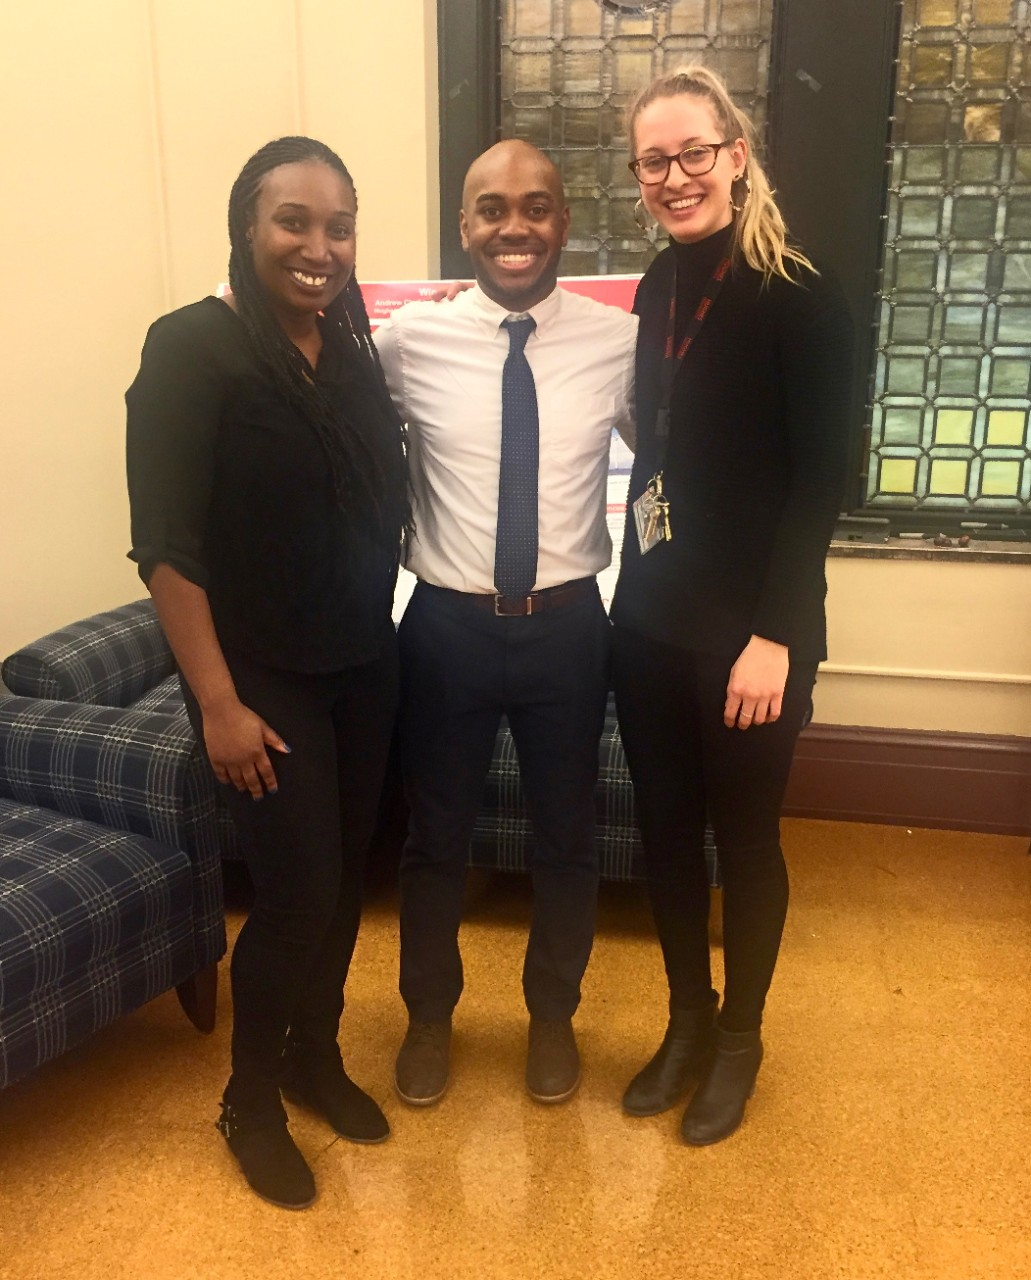 Rickey Terrell stands with two women from Hughes High School's Engineering Pathway program.